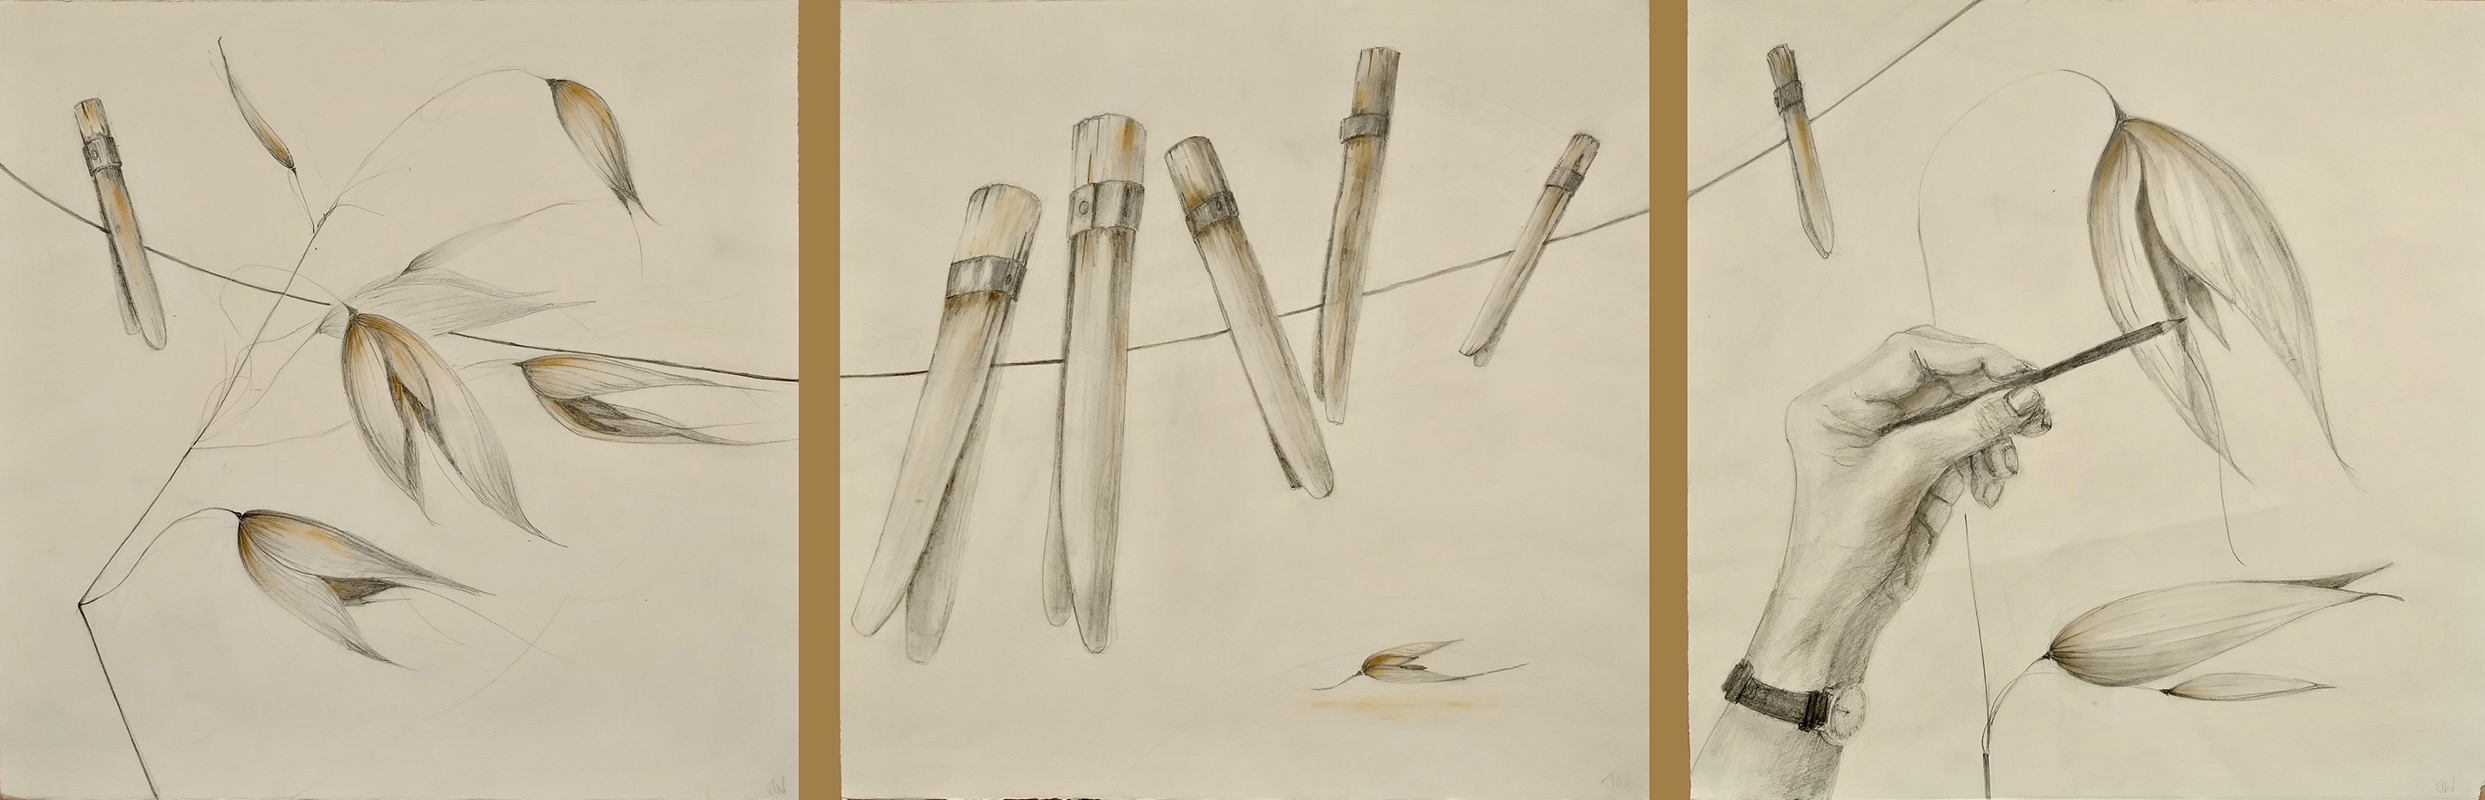 Pencil drawing of washing line, hand, oats